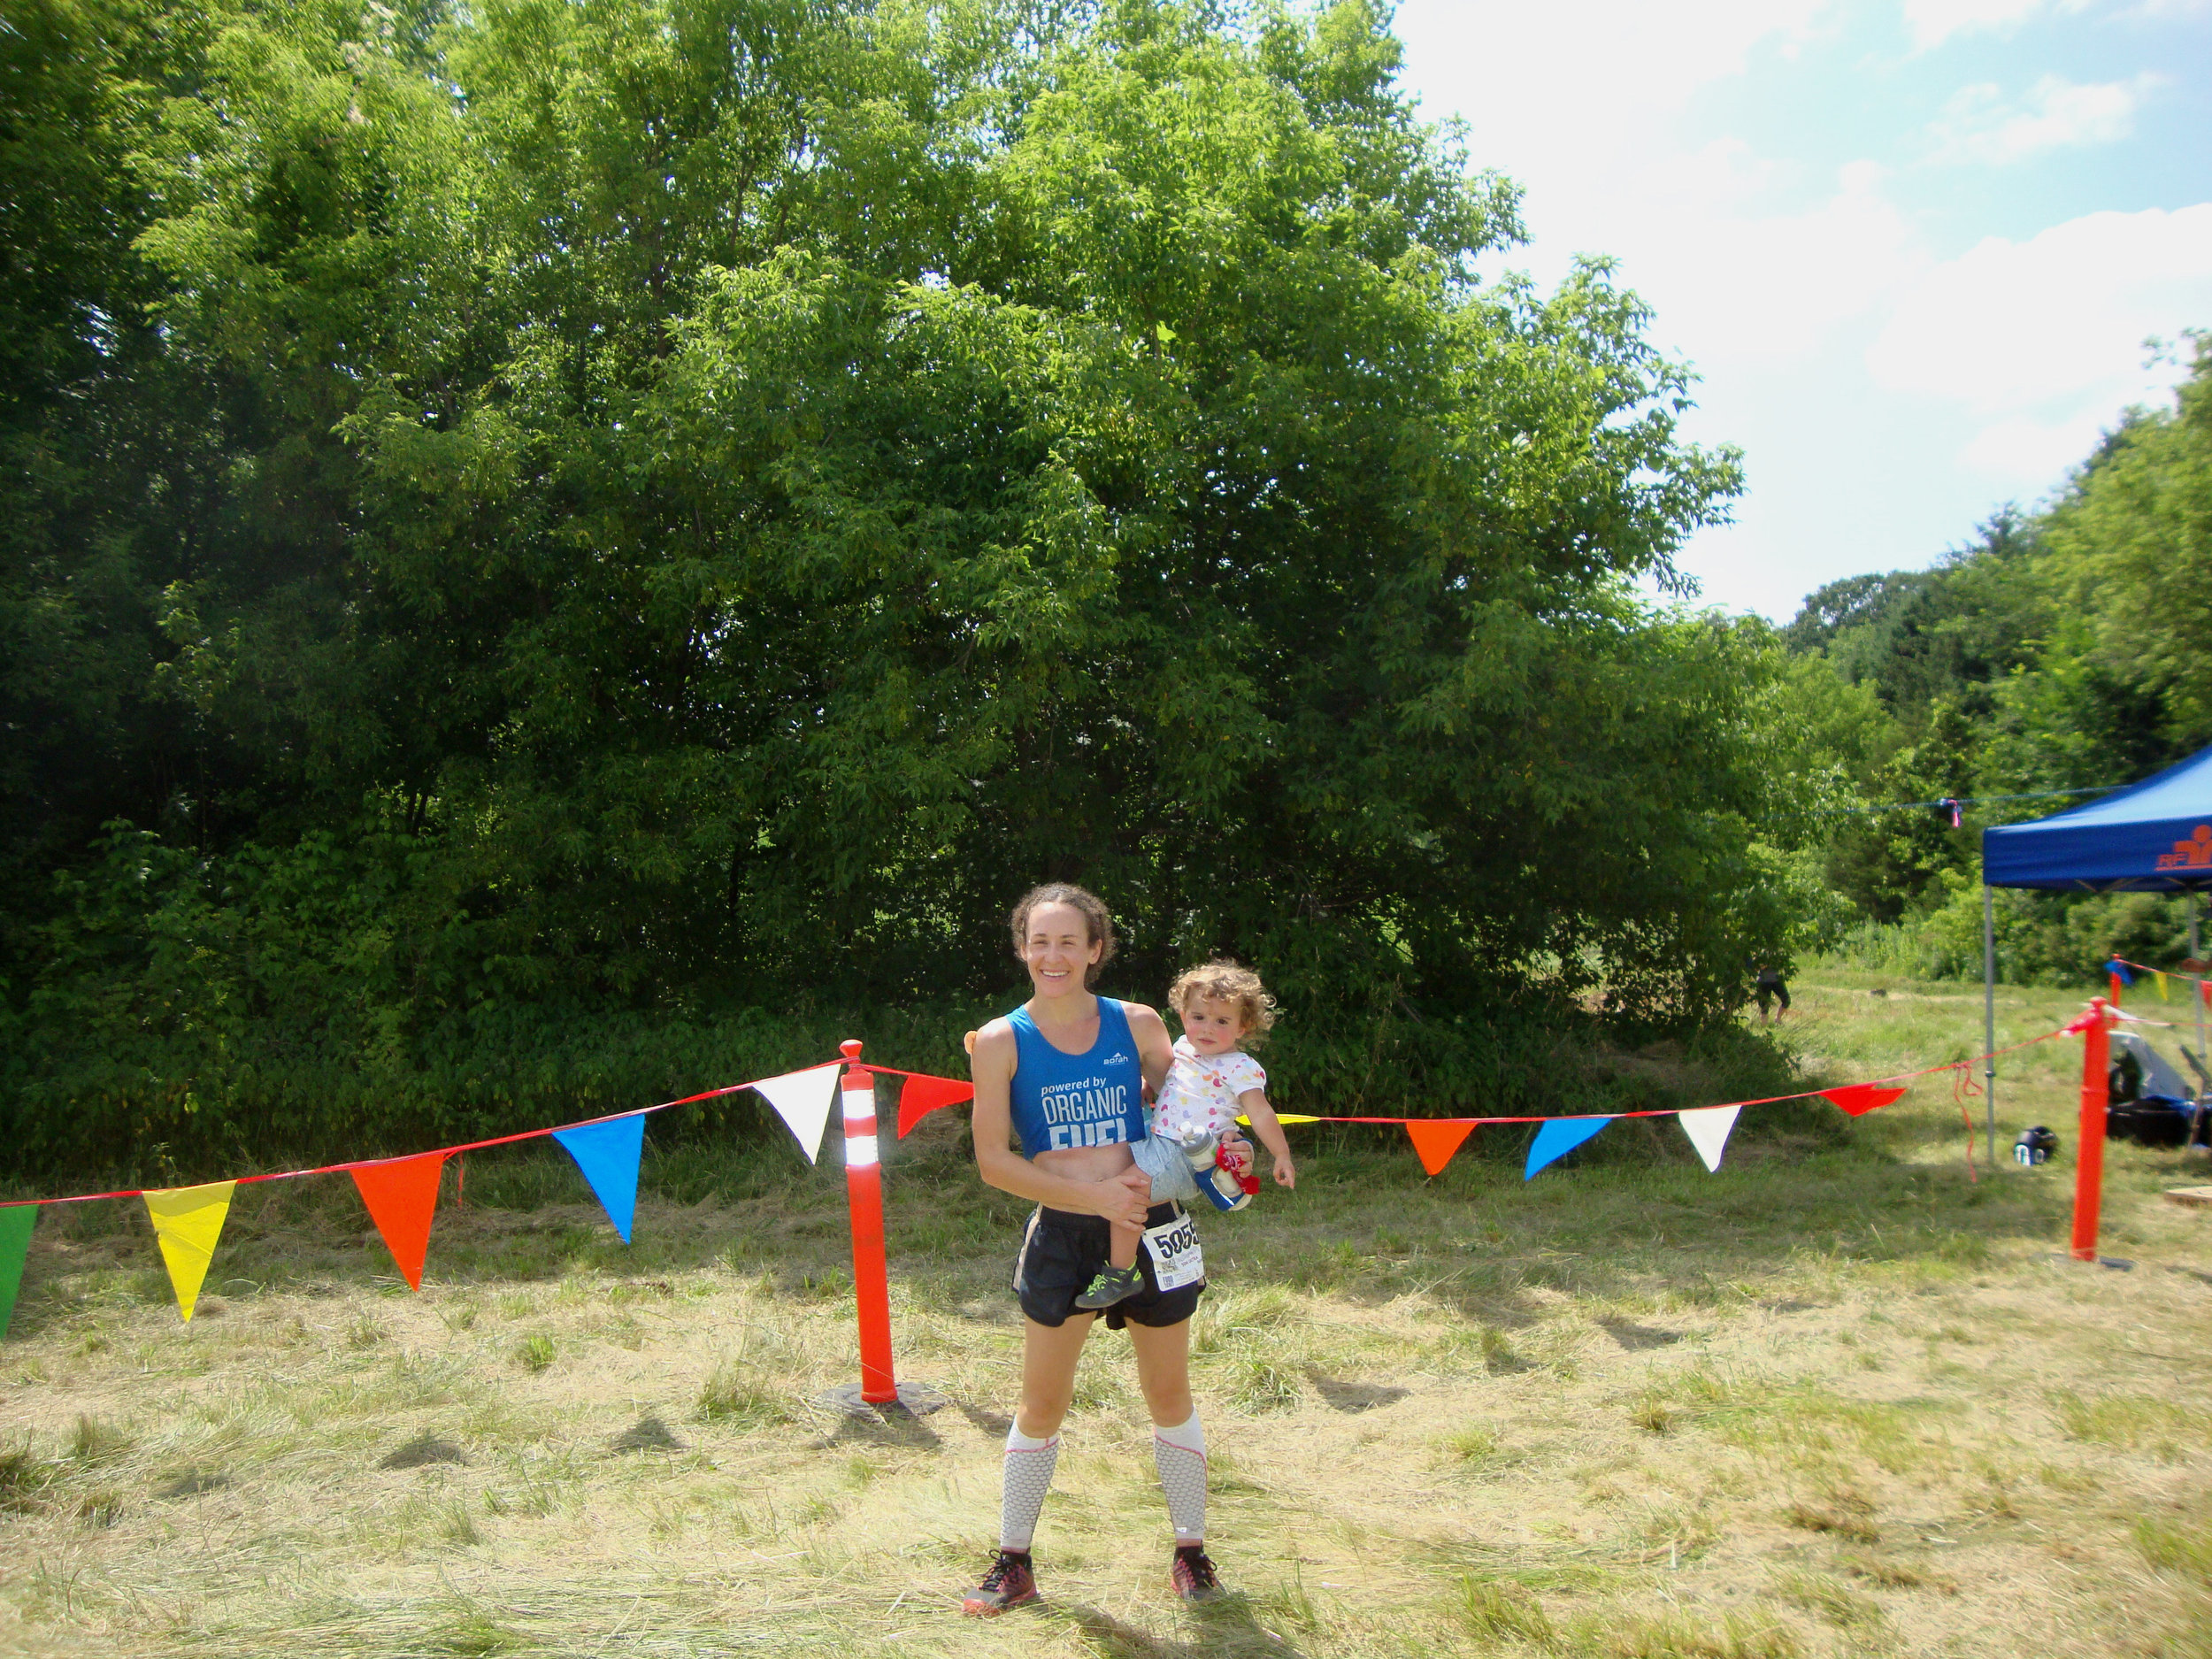 Just over the finish line with Mischa, my 1.5 year old.